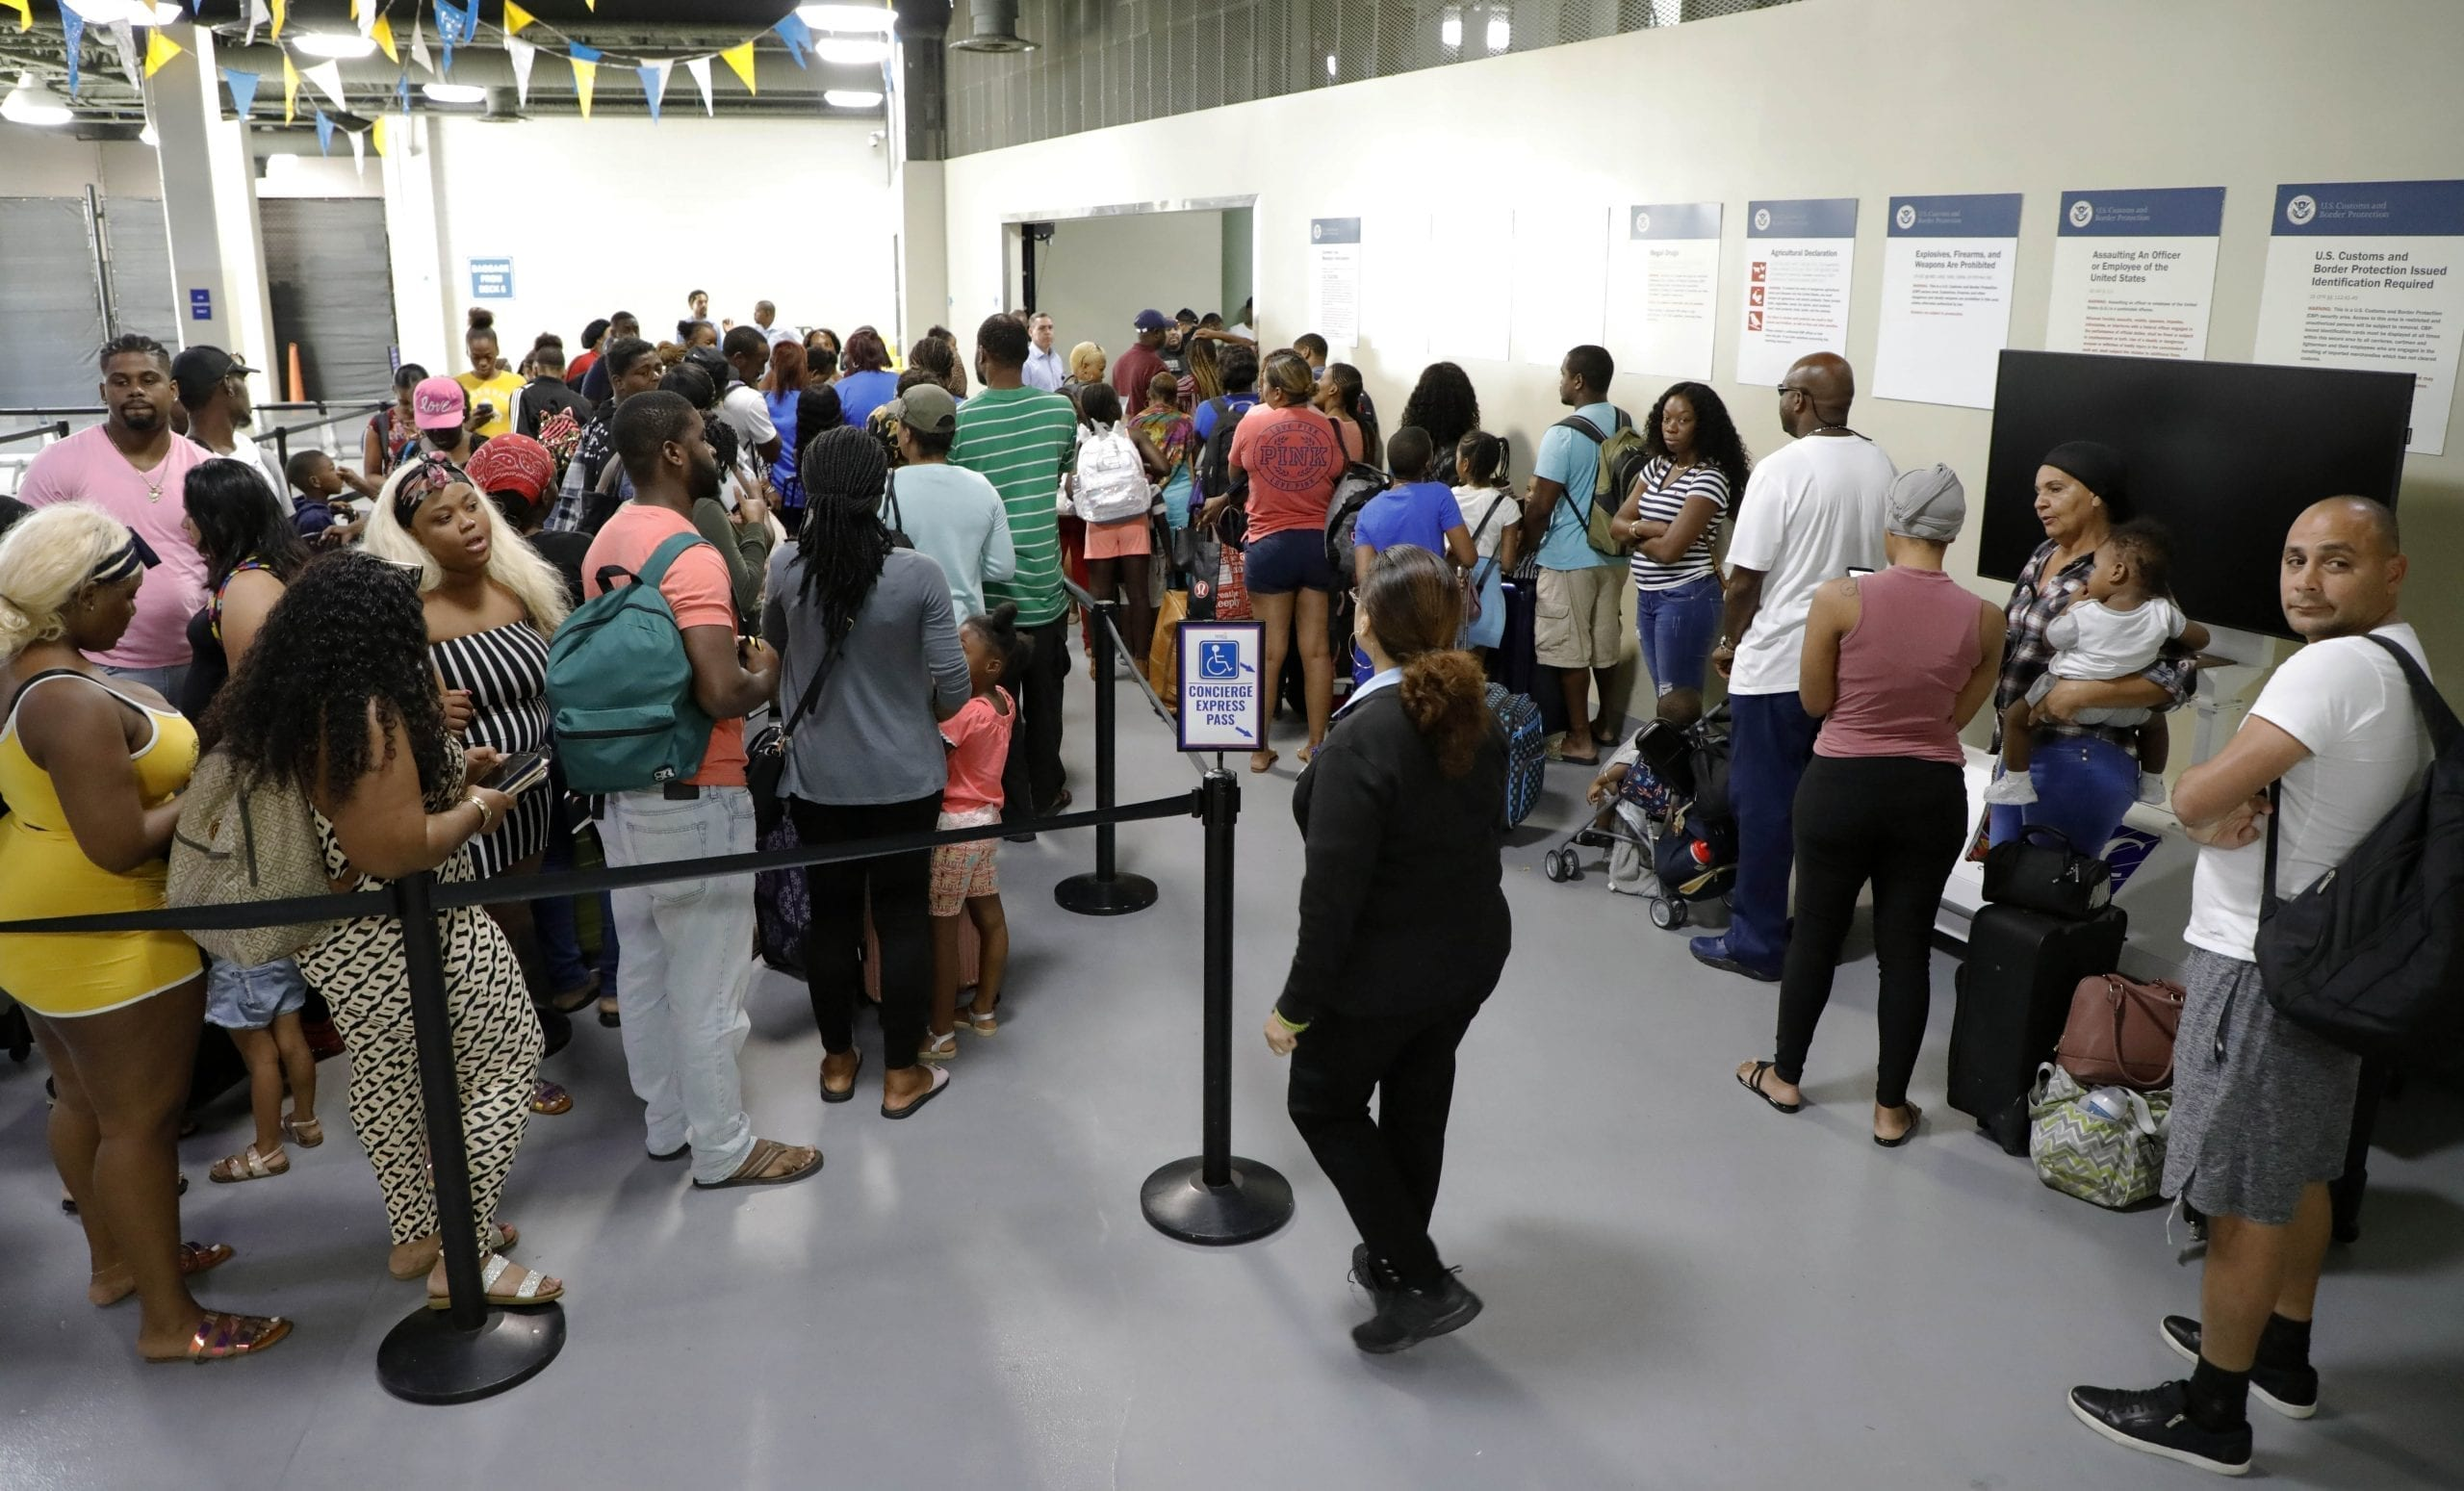 No Visa? No Entry for Bahamian Storm Evacuees